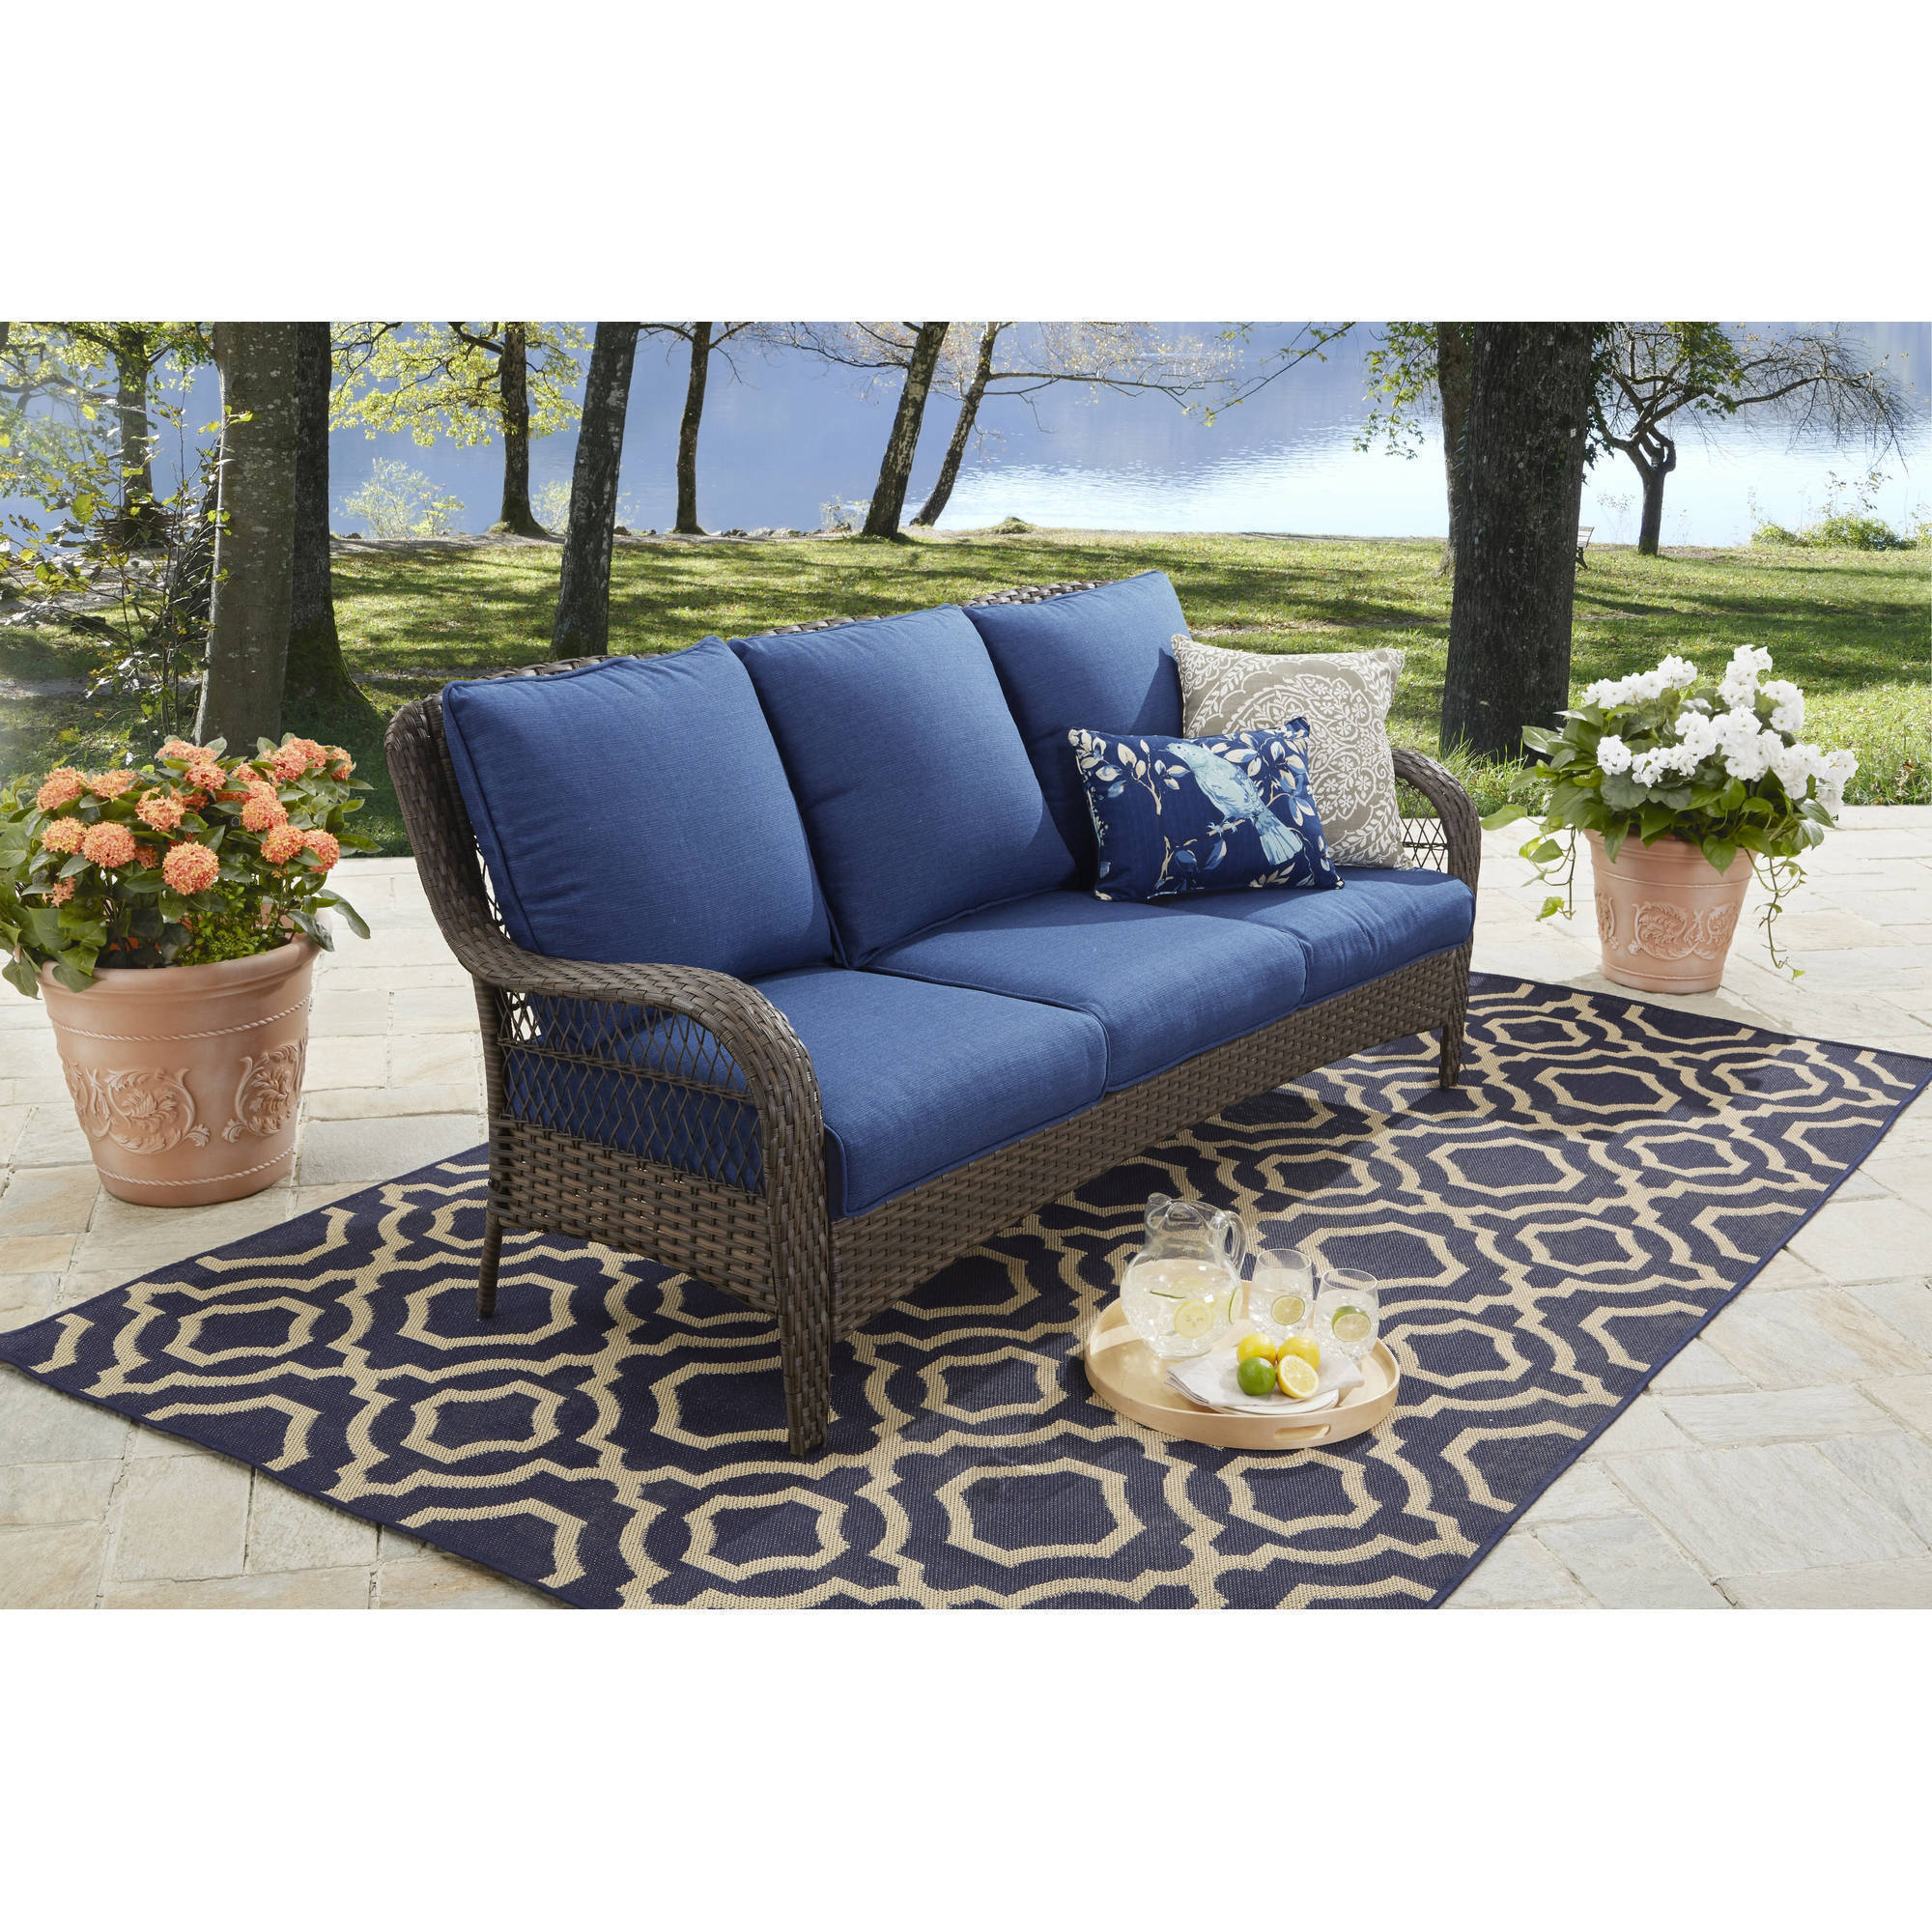 Better Homes And Gardens Colebrook Outdoor Sofa, Seats 3